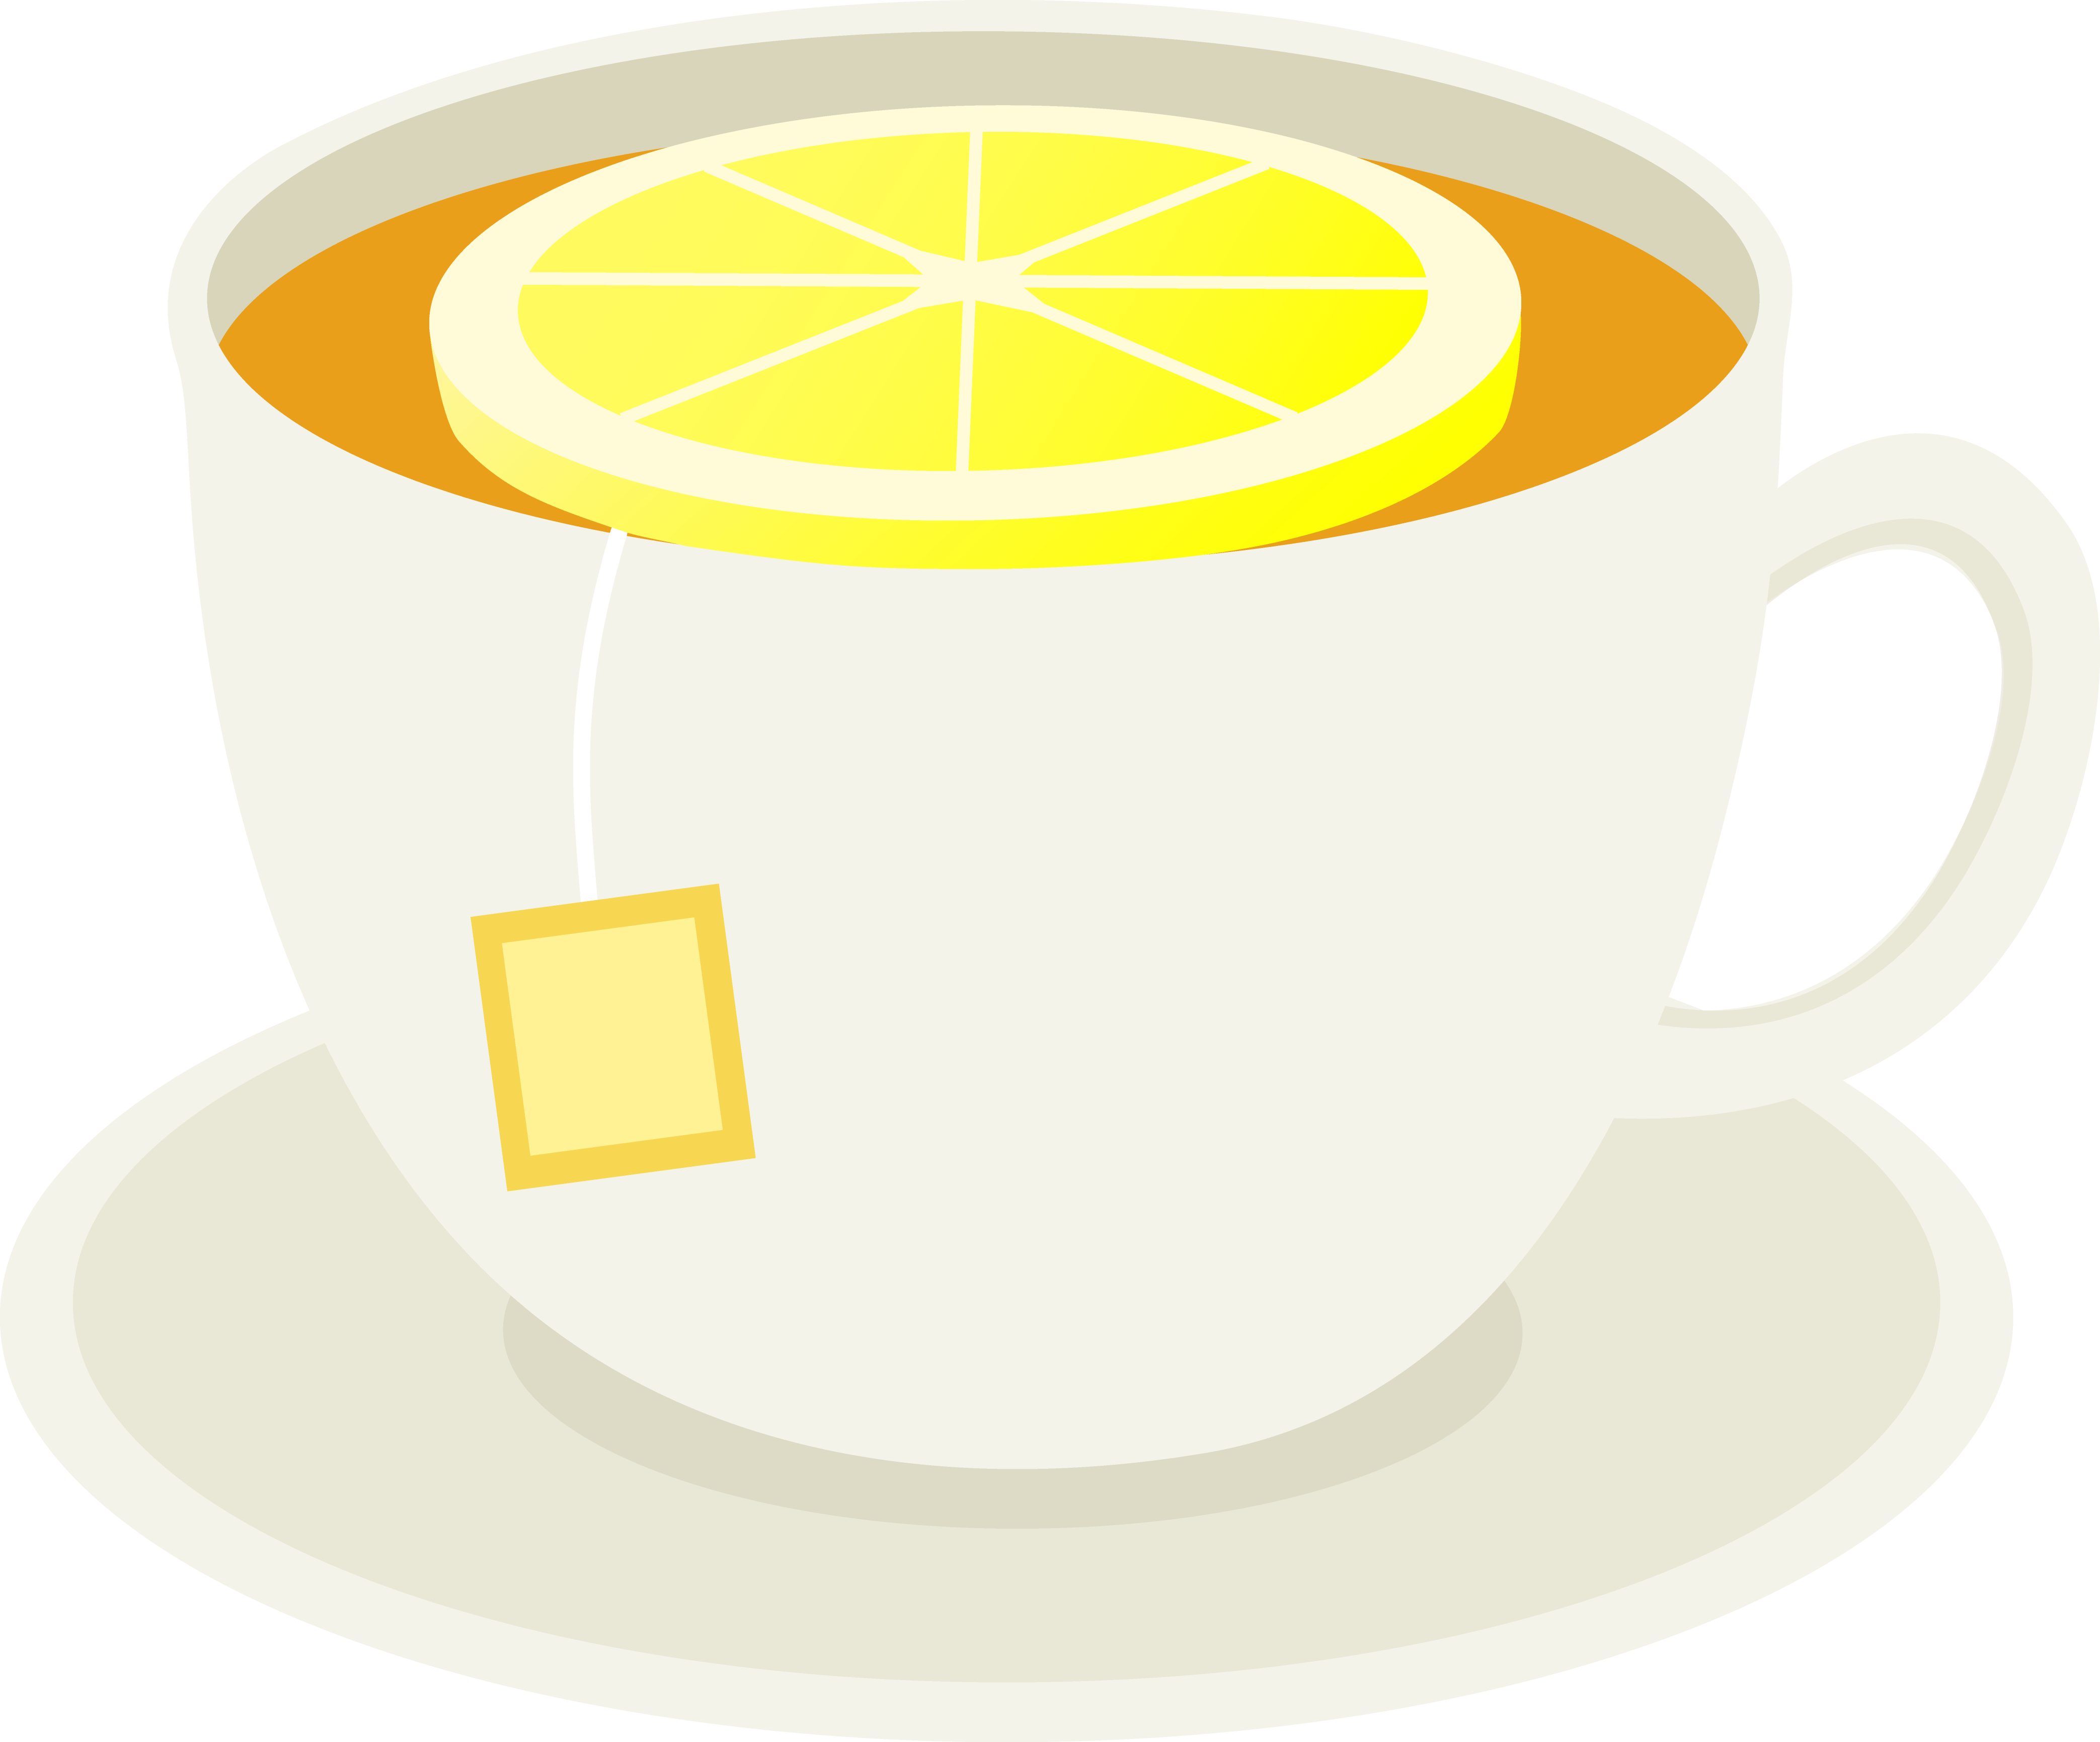 Drink clipart cup hot tea. Of with lemon slice